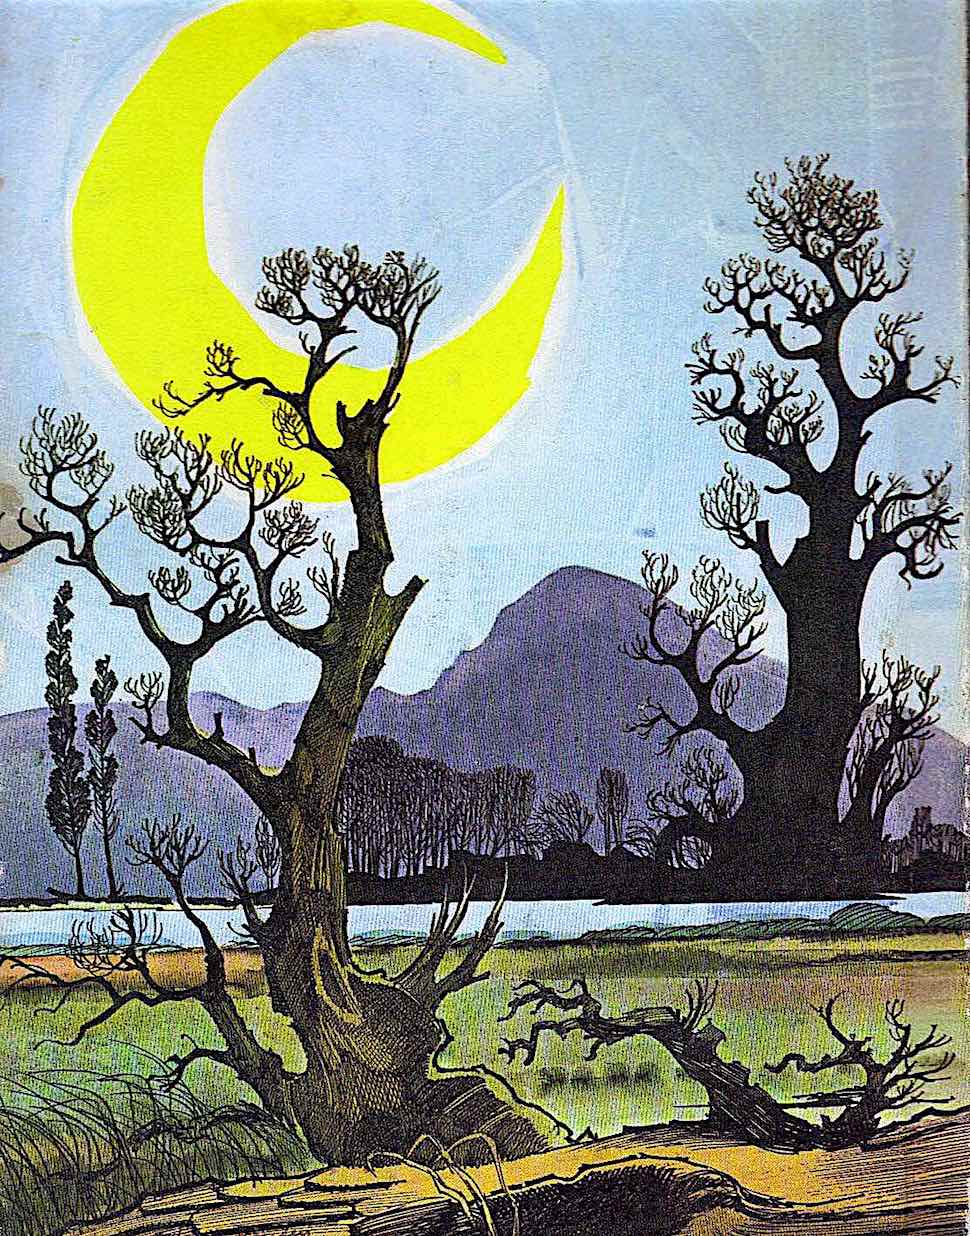 a Wende & Harry Devlin children's book 1965, the moon and a dead tree